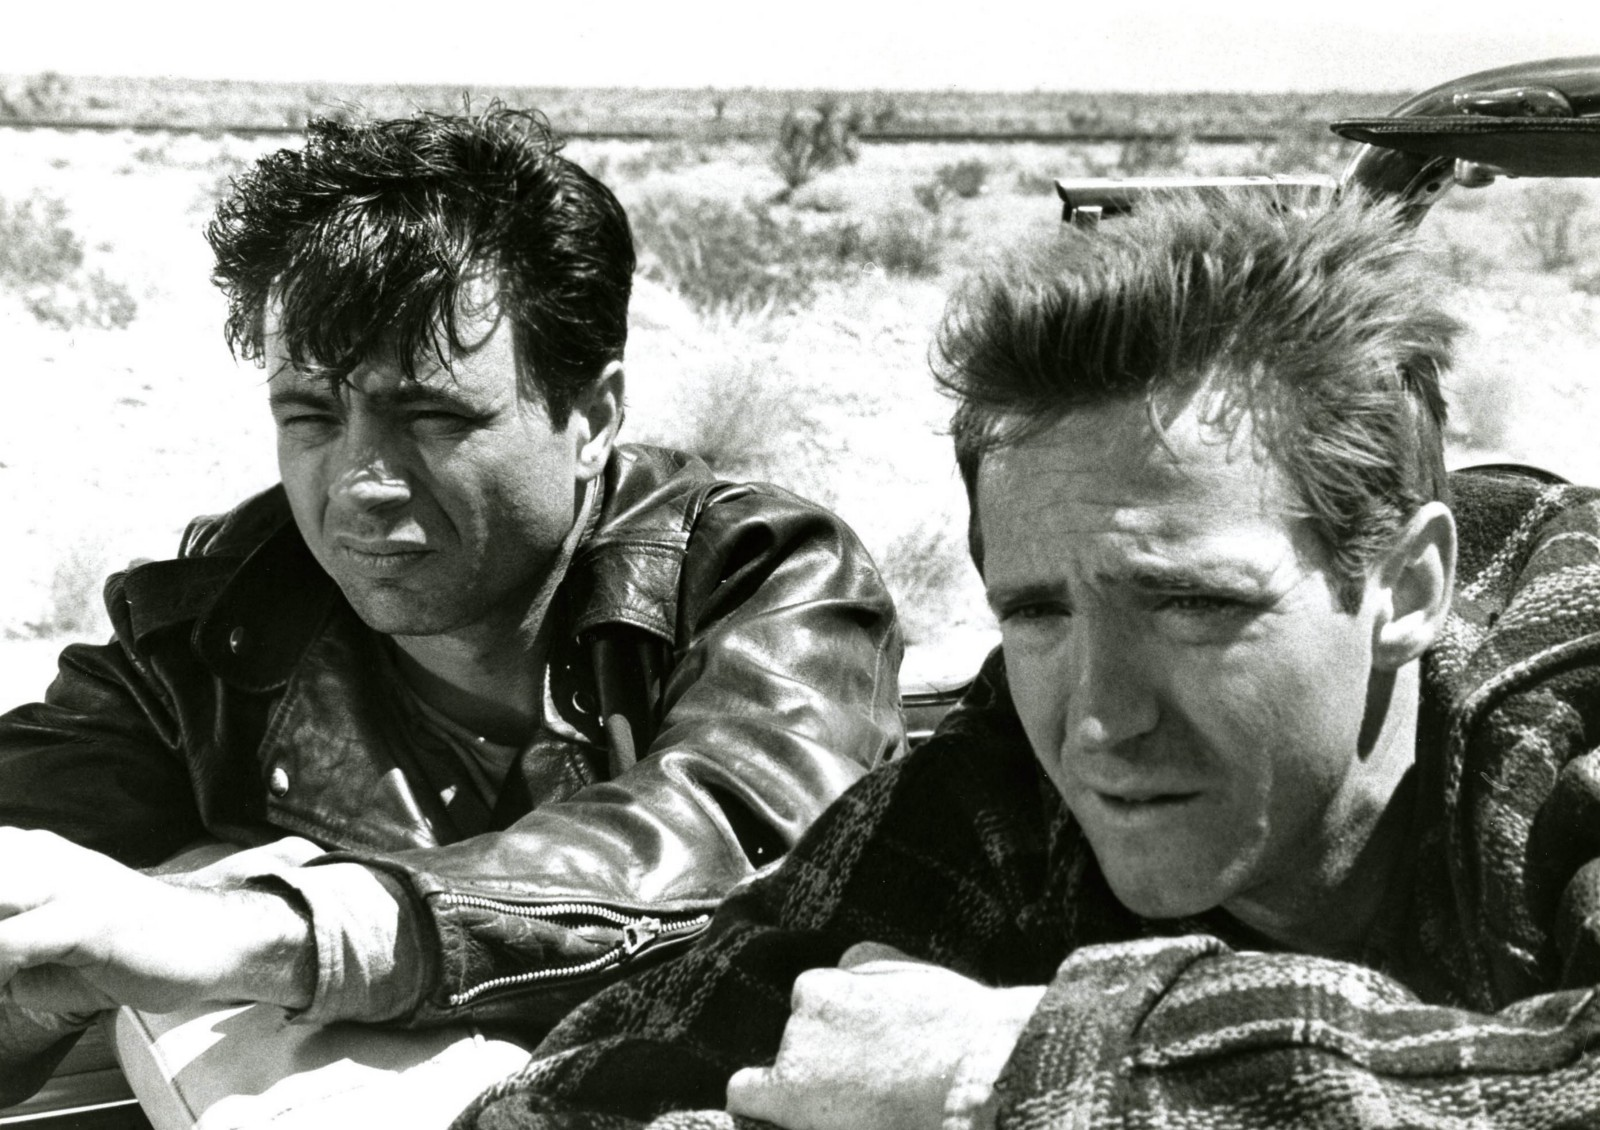 with Robert Blake in In Cold Blood (1967)